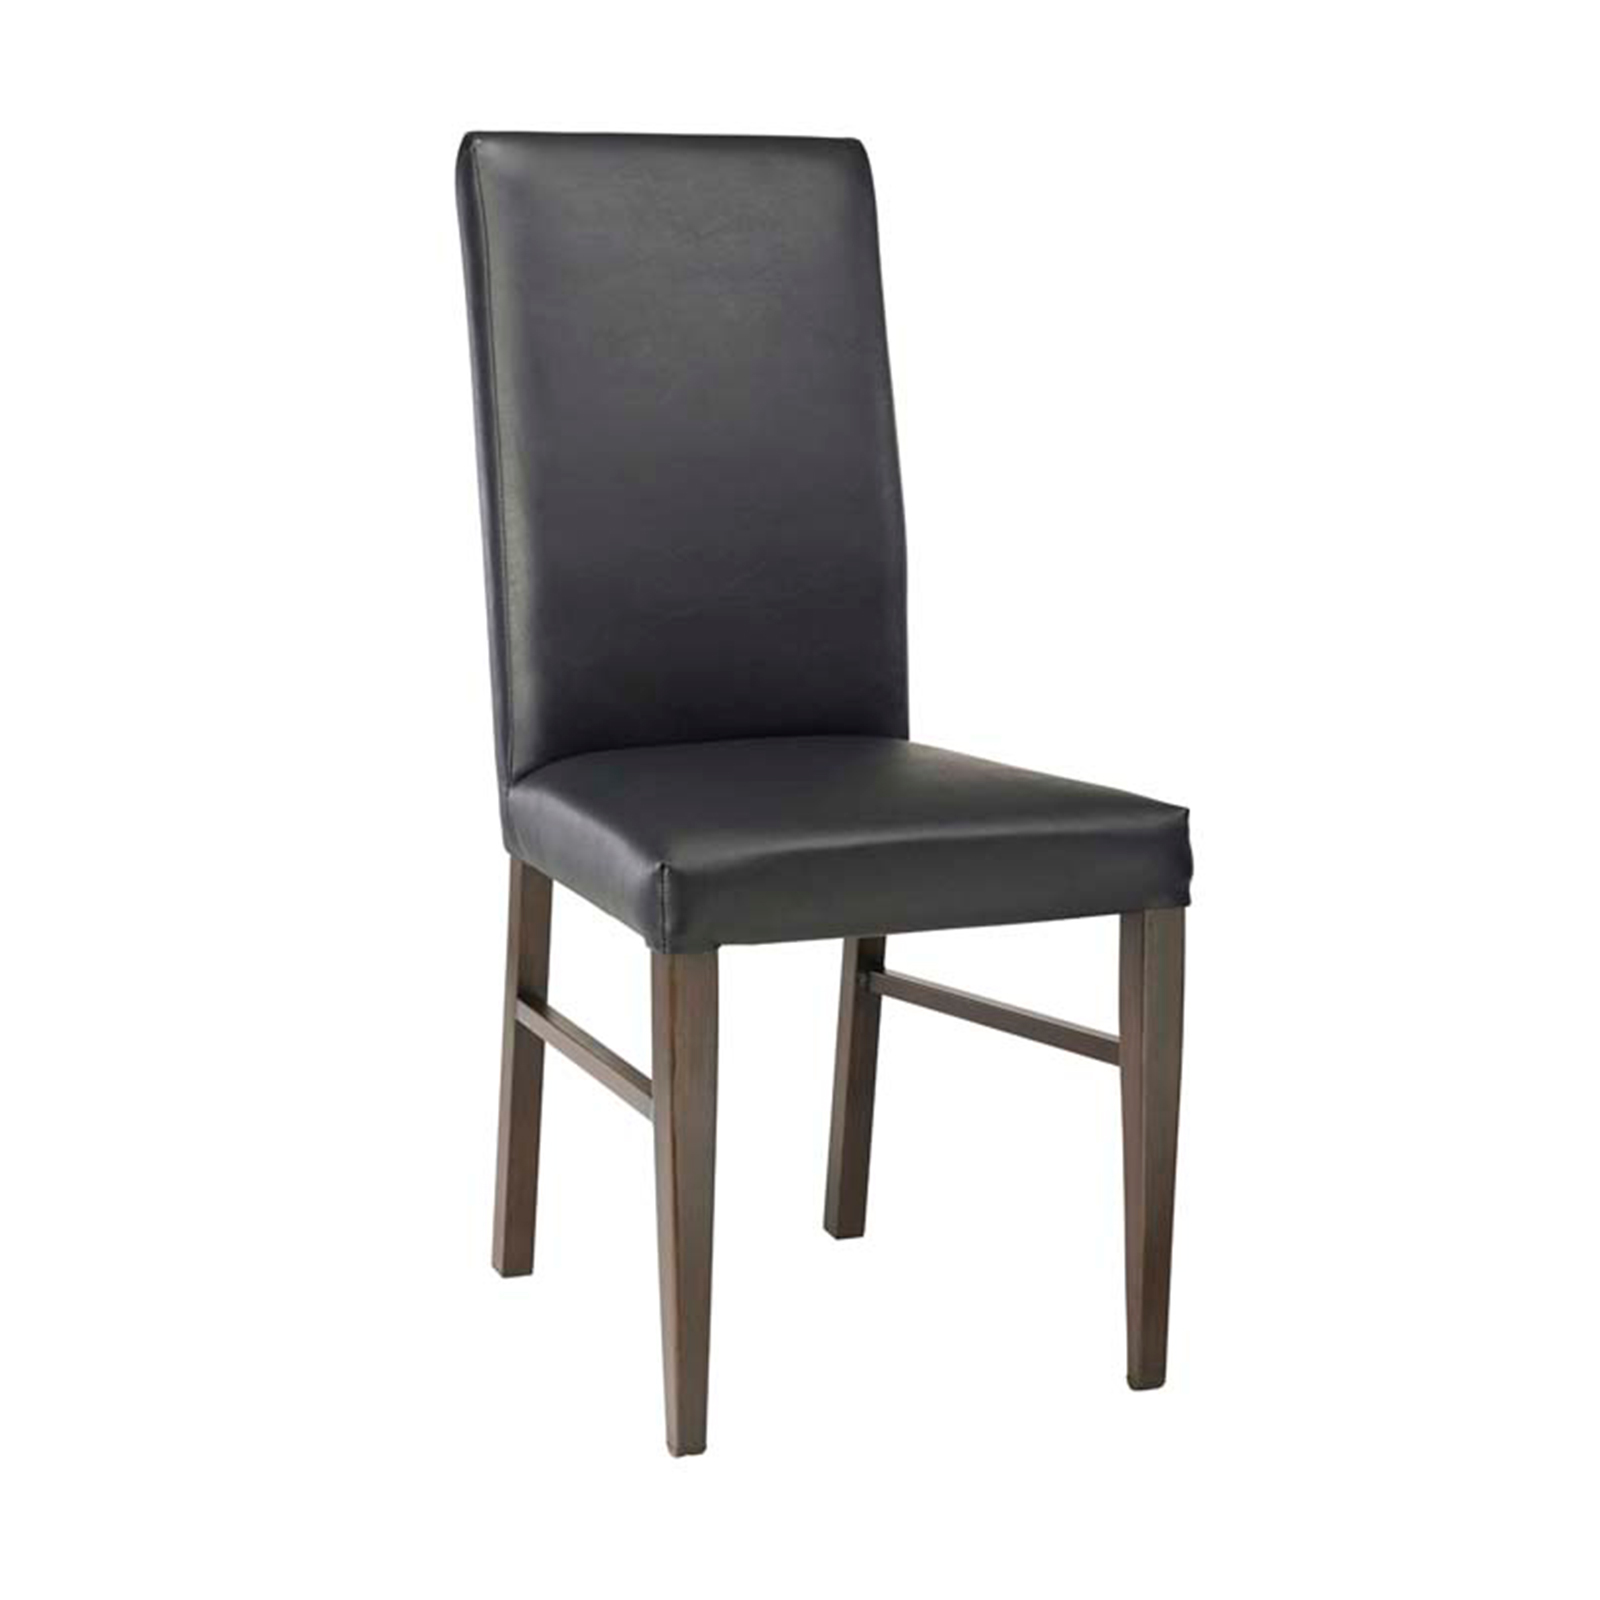 G & A Commercial Seating 506 chair, side, indoor